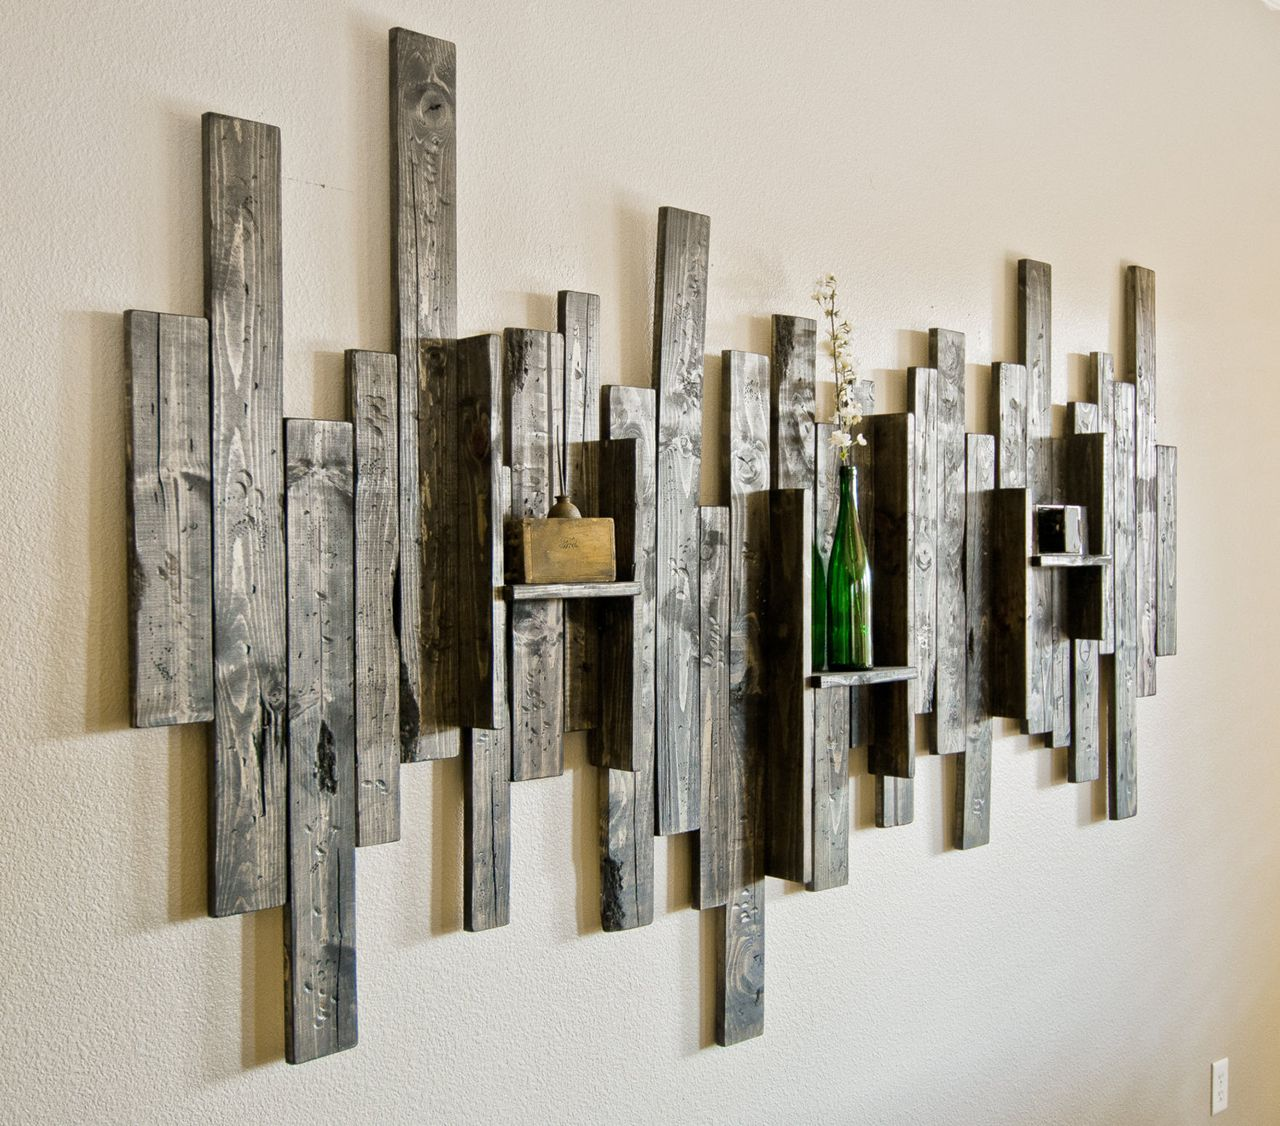 27 Rustic Wall Decor Ideas To Turn Shabby Into Fabulous Wood Wall Decor Wall Decor Design Wooden Wall Decor